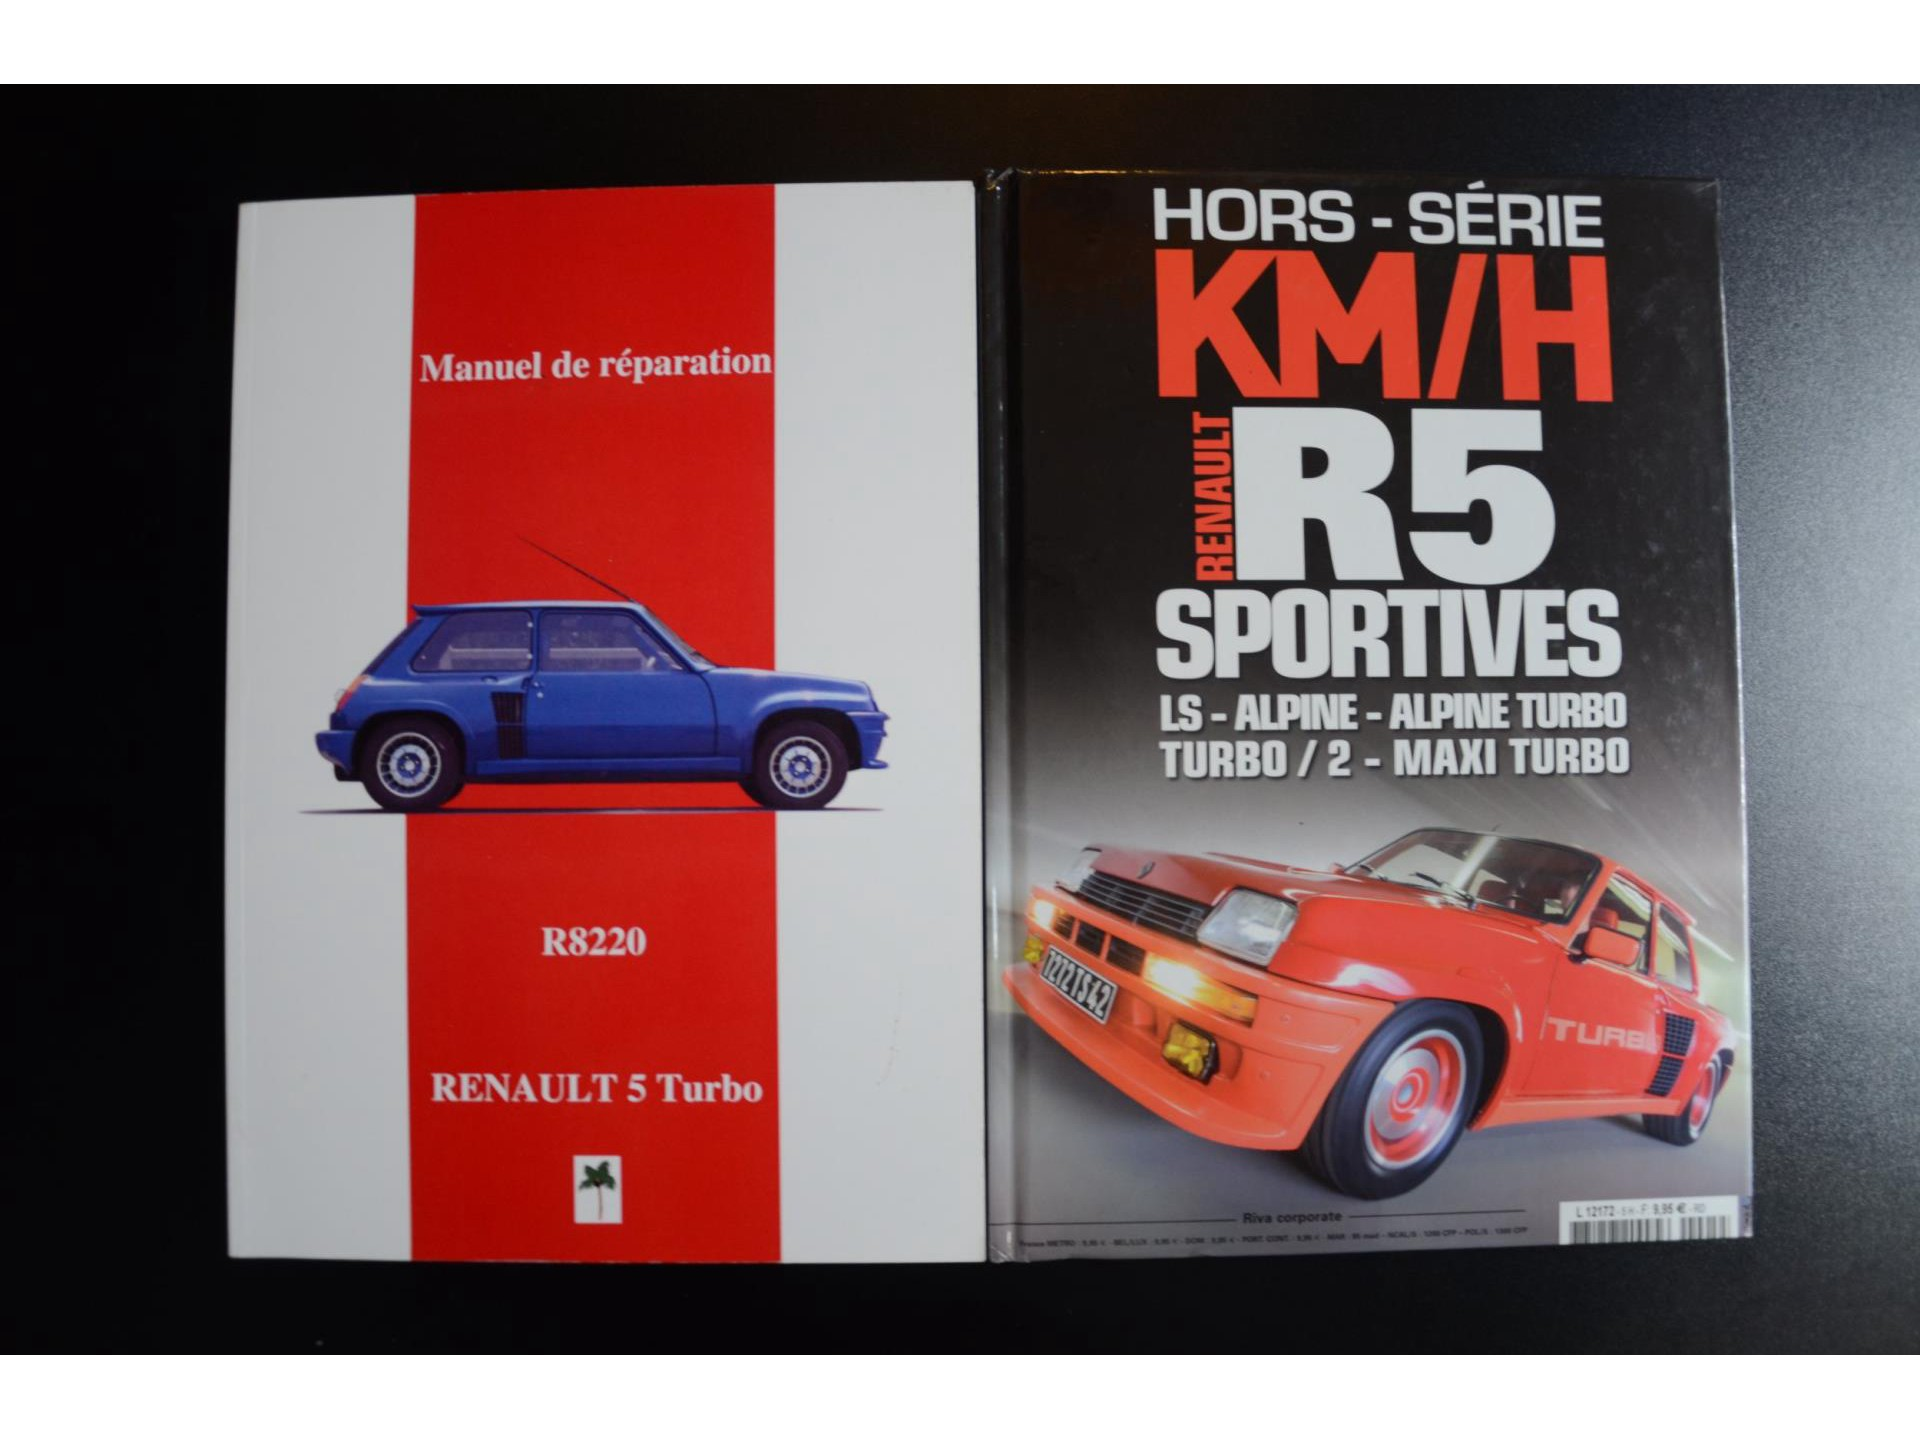 Renault-5-Turbo-Series-1-for-sale-81